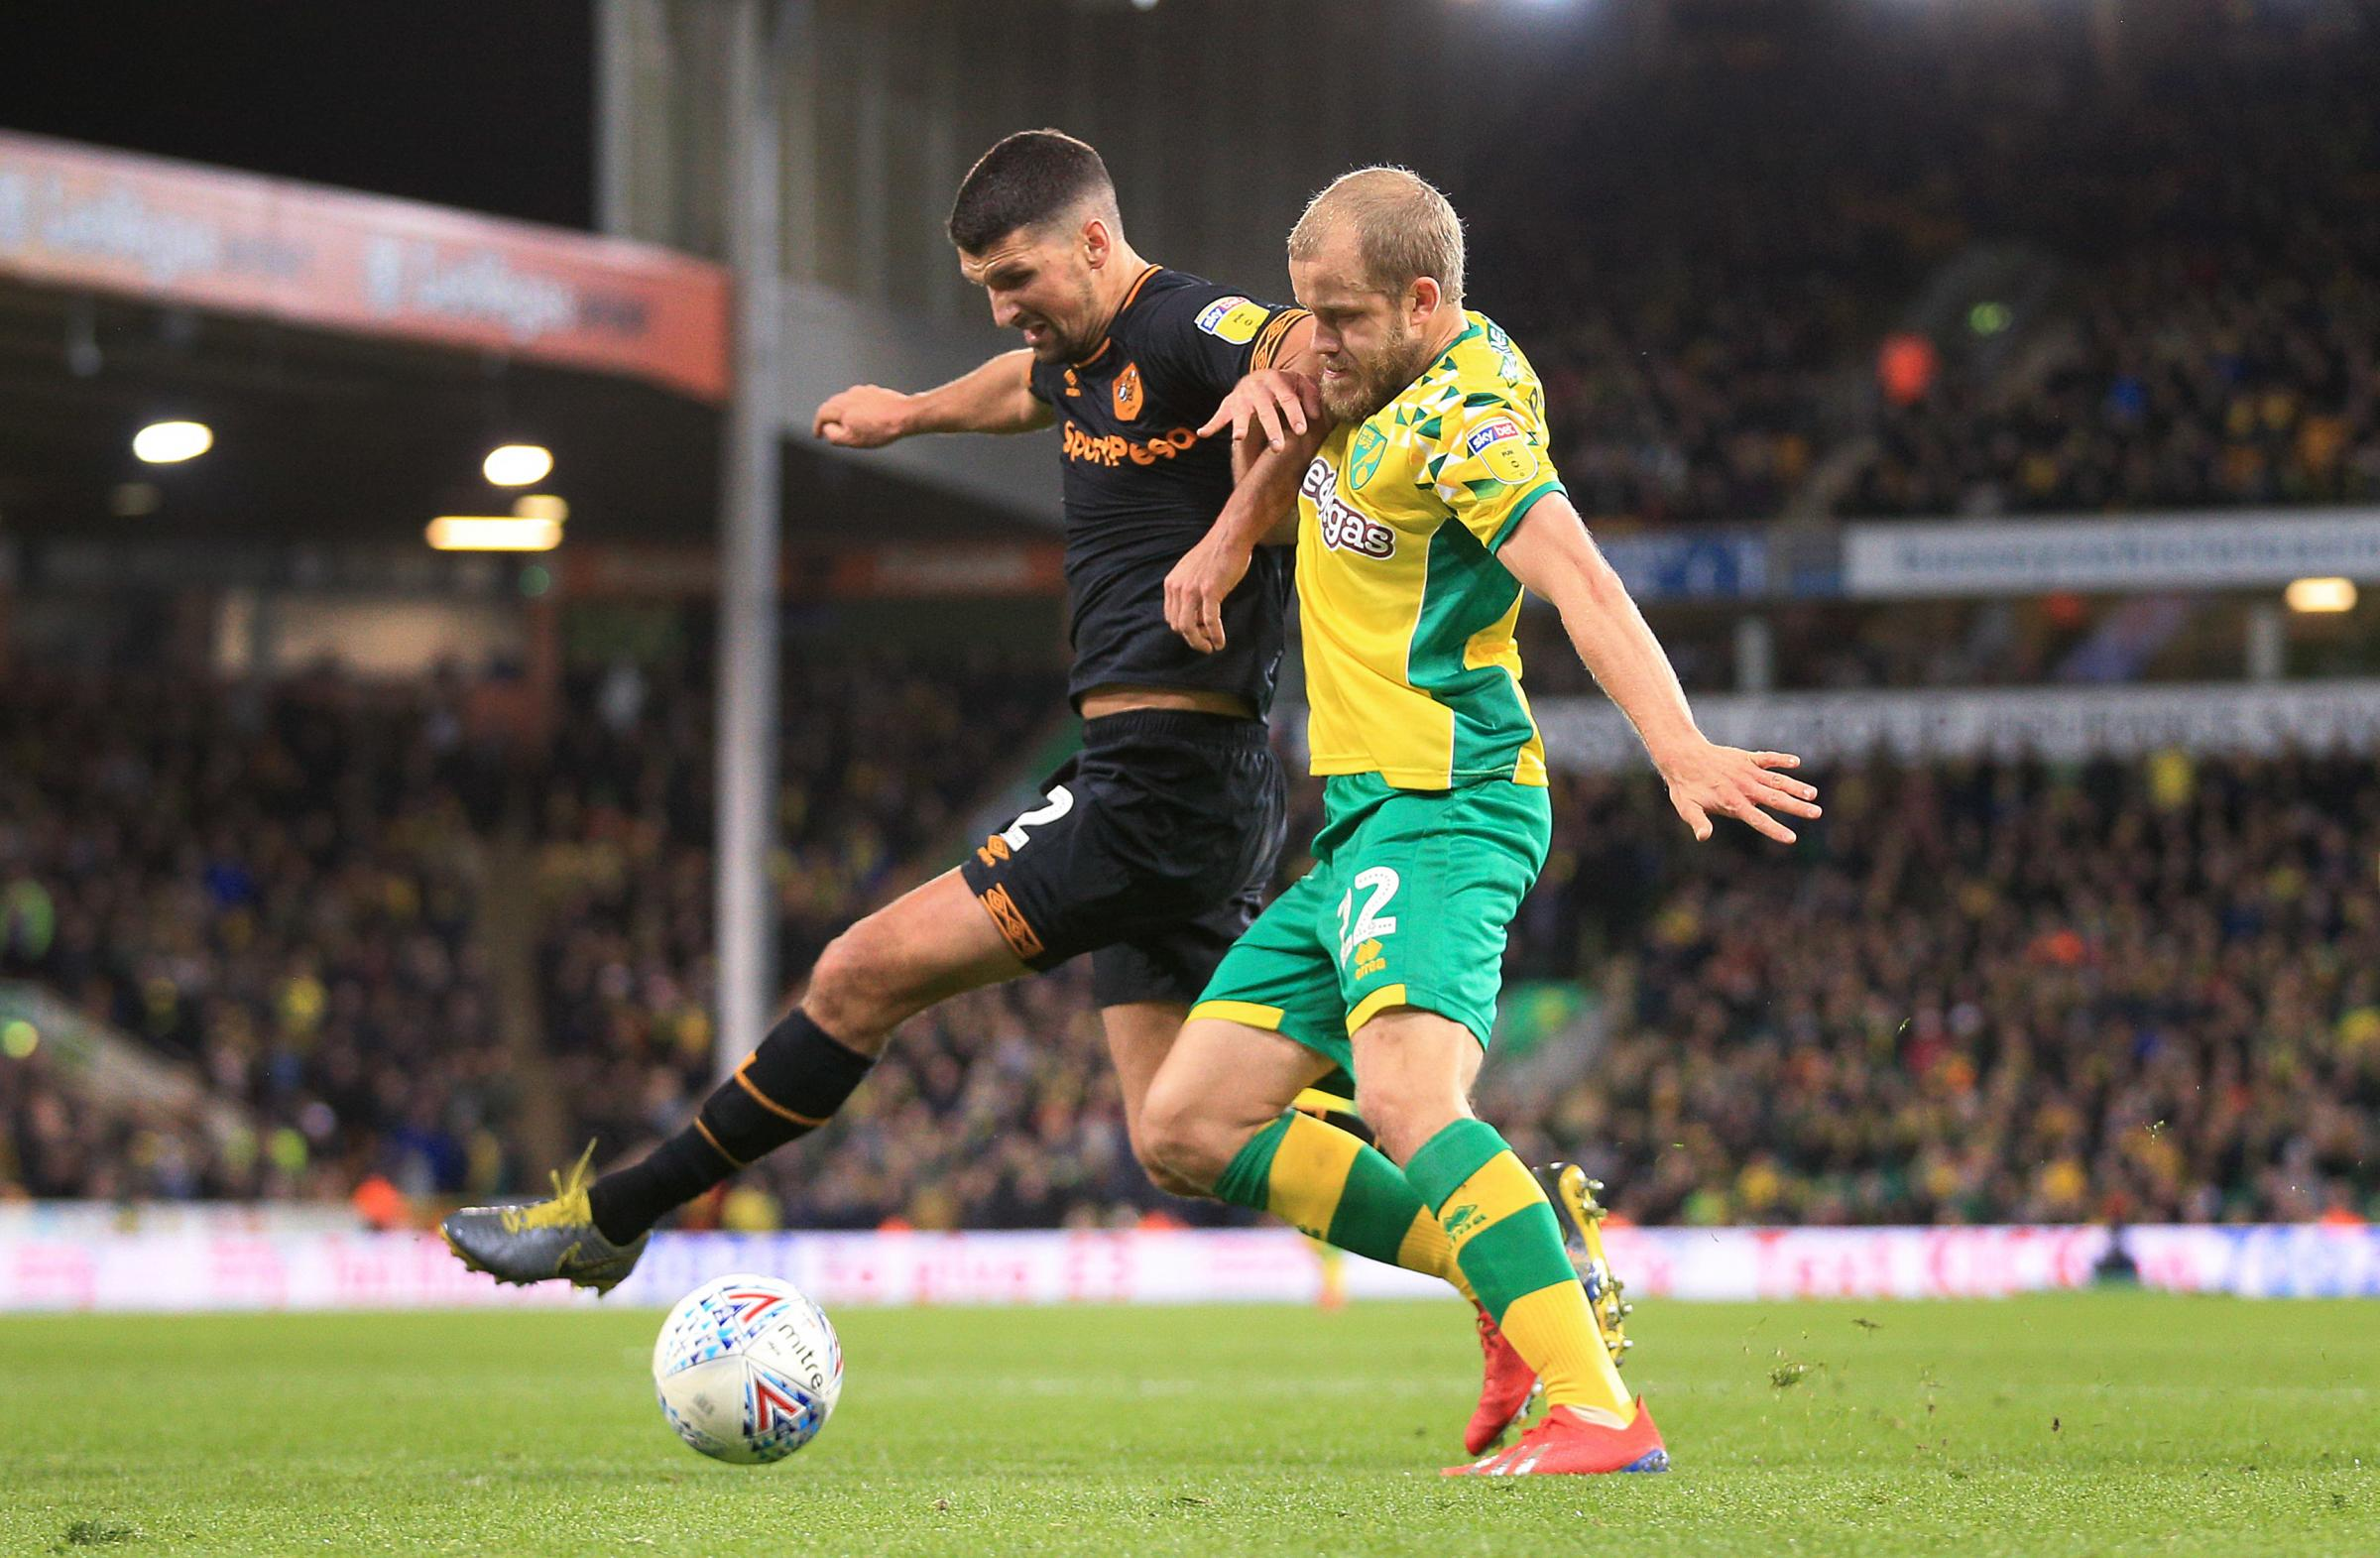 NORWICH, ENGLAND - MARCH 13: Eric Lichaj of Hull in action with Teemu Pukki of Norwich during the Sky Bet Championship match between Norwich City and Hull City at Carrow Road on March 13, 2019 in Norwich, England. (Photo by James Chance/Getty Images).